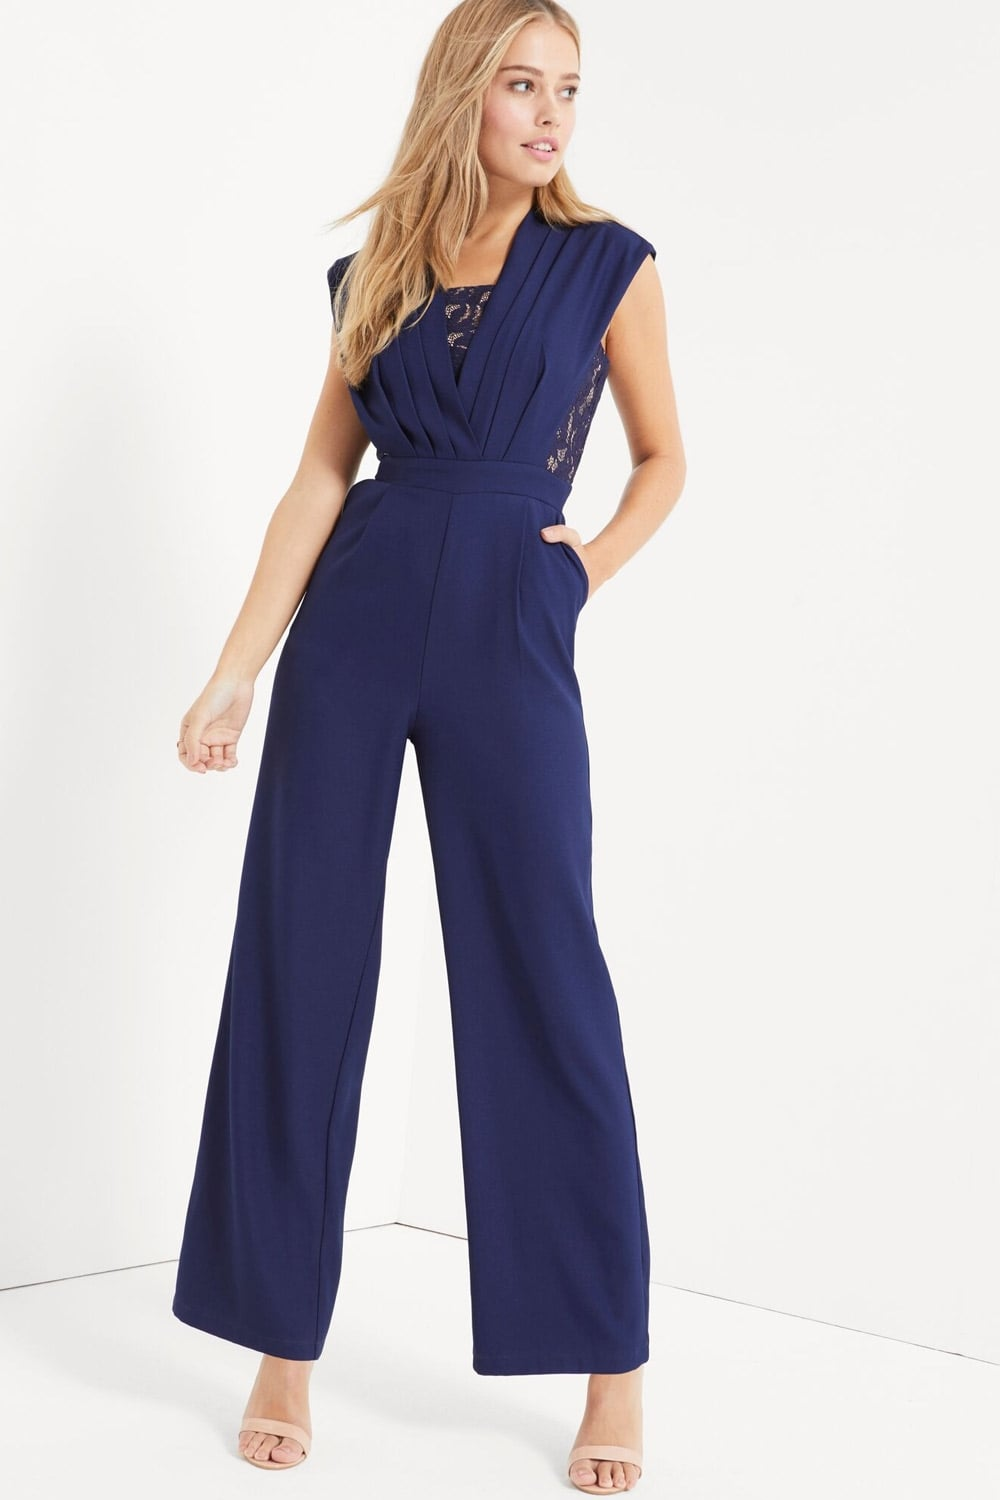 Navy Lace Plunge Kimono Sleeve Jumpsuit. Order today & shop it like it's hot at Missguided. A jumpsuit in a navy finish with lace detail, plunge neckline and kimono sleeves.